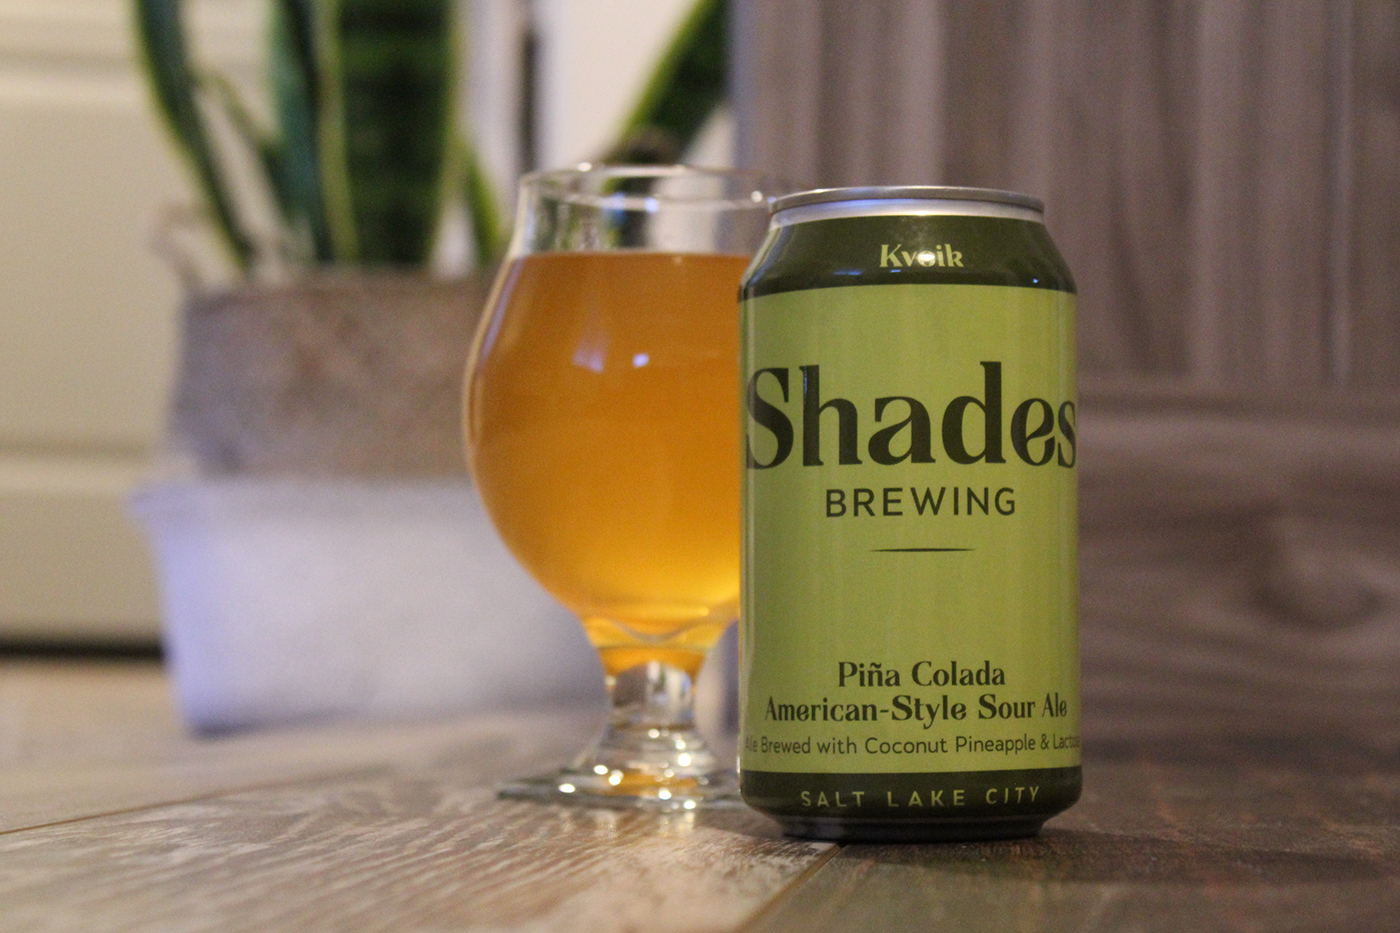 Shades Brewing's new Piña Colada pale ale hits all the right notes.